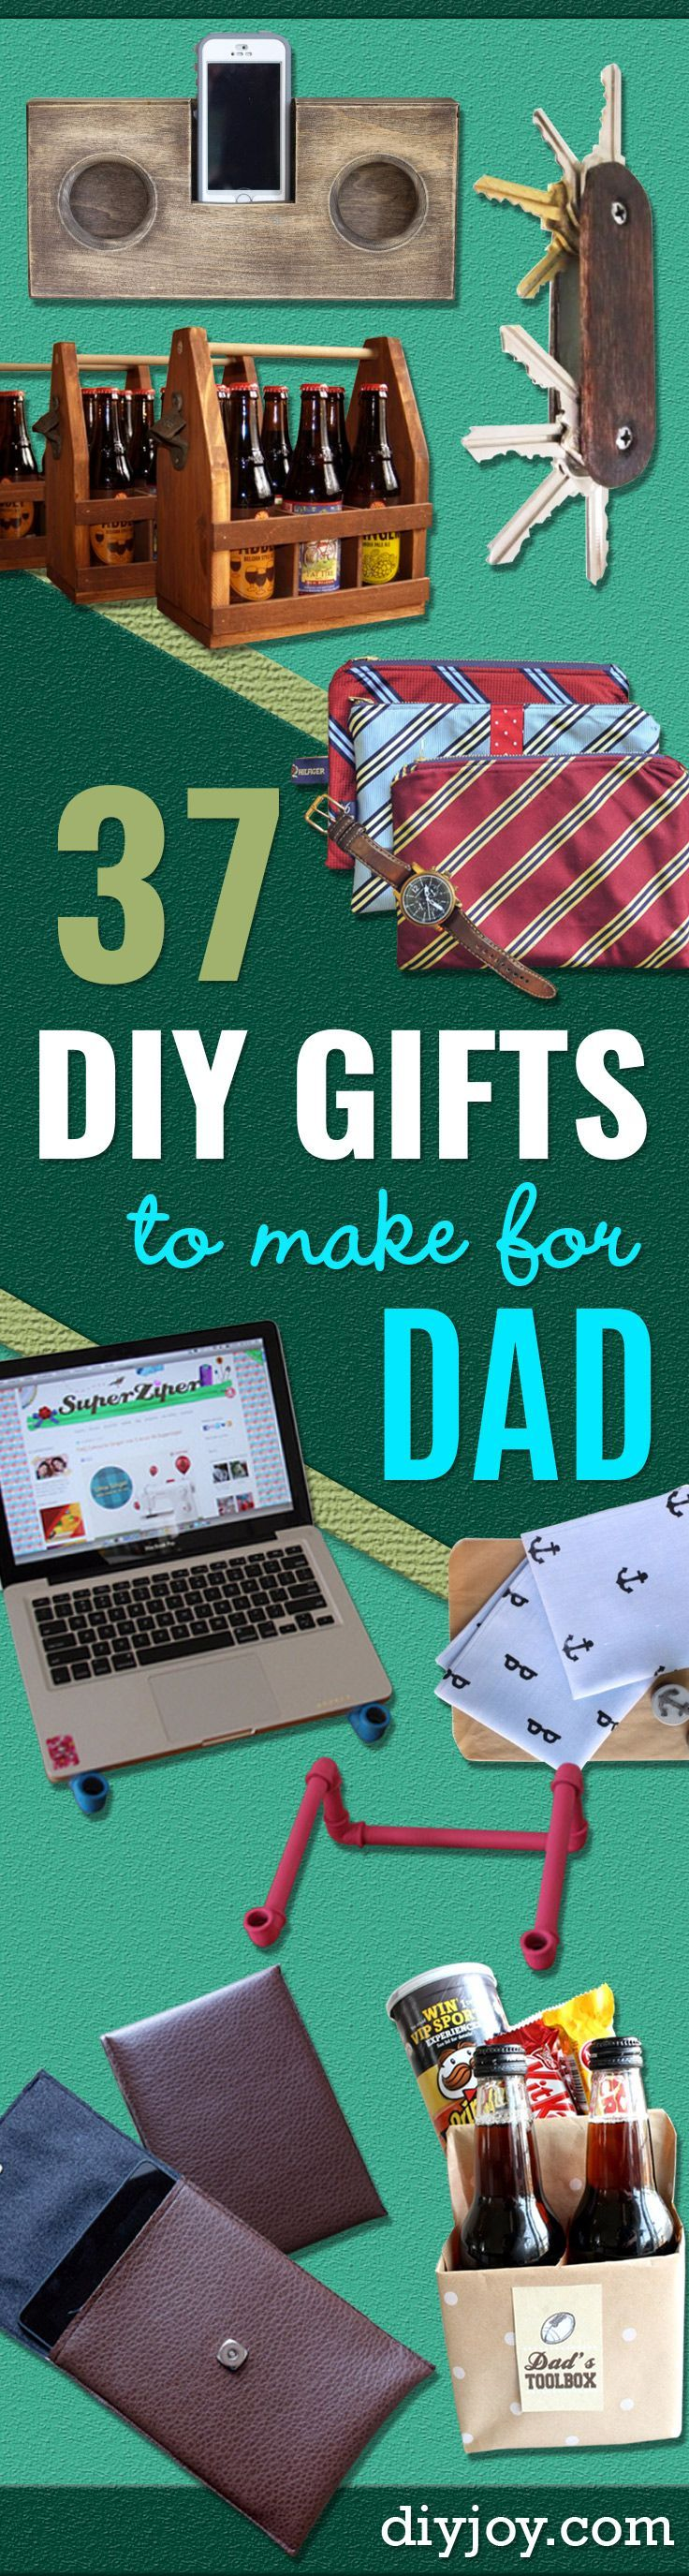 DIY Gifts for Dad - Best Craft Projects and Gift Ideas You Can Make for Your Father - Last Minute Presents for Birthday and Christmas - Creative Photo Projects, Gift Card Holders, Gift Baskets and Thoughtful Things to Give Fathers and Dads http://diyjoy.com/diy-gifts-for-dad